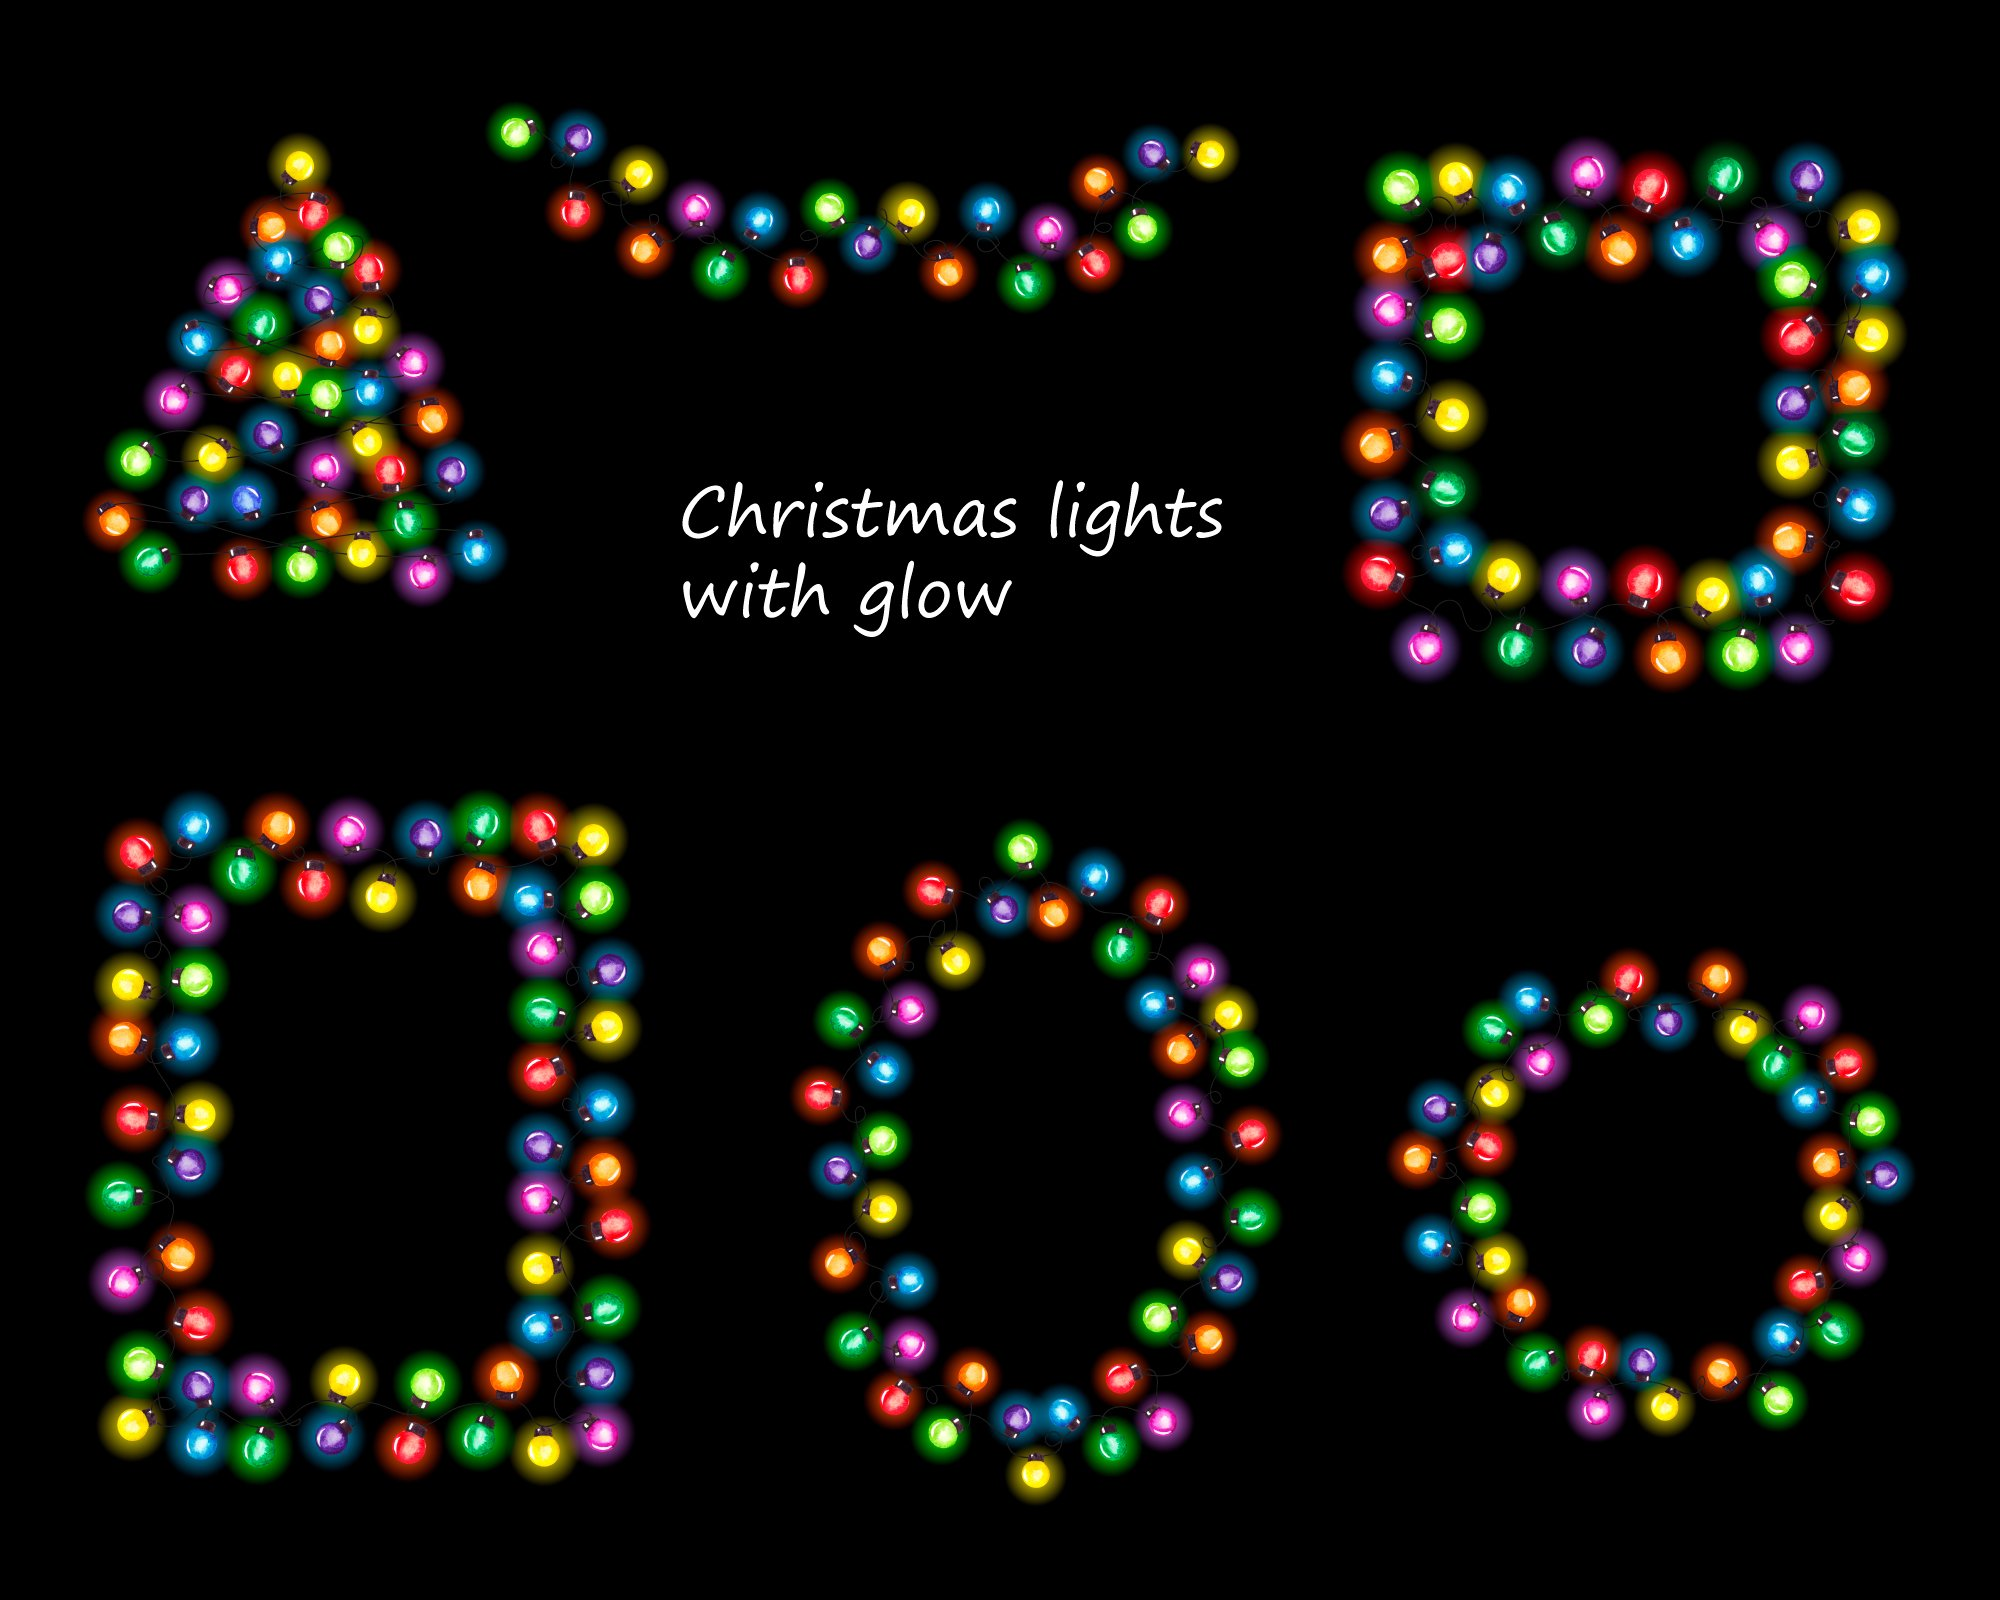 String of Christmas lights clipart, border, frame png example image 2